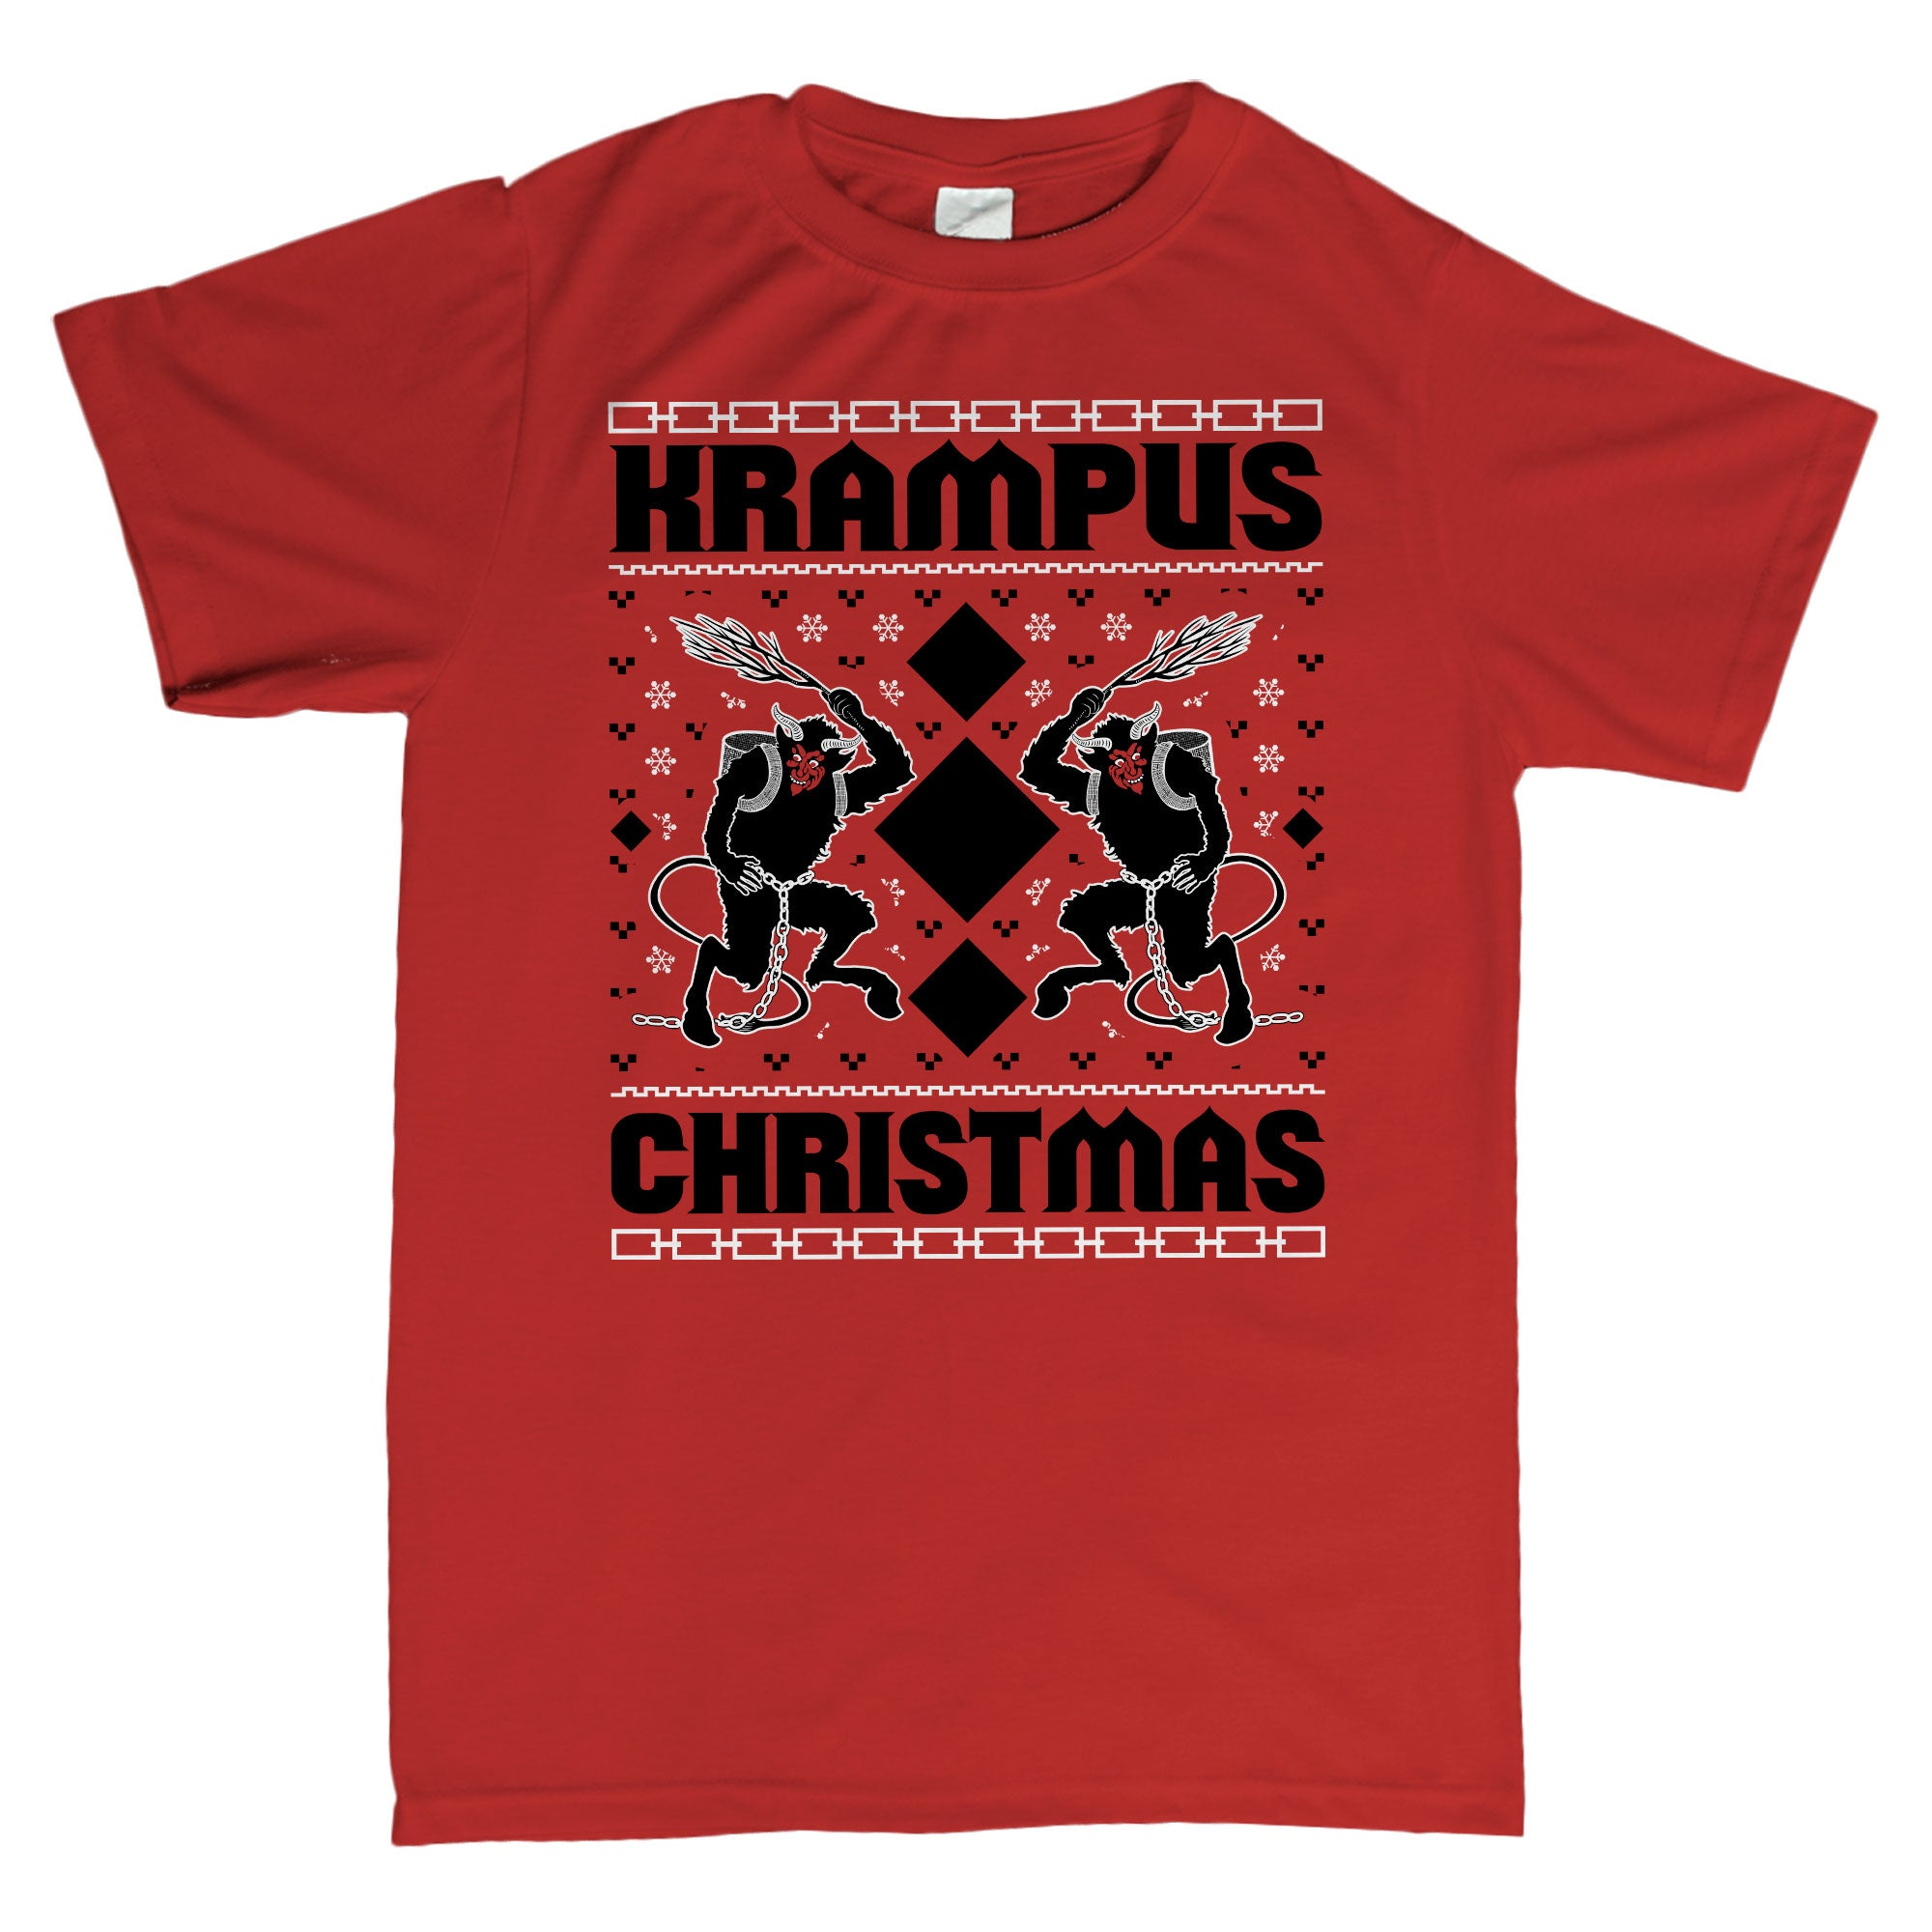 Krampus Christmas - Ugly Christmas Sweater Party Style-T-Shirt